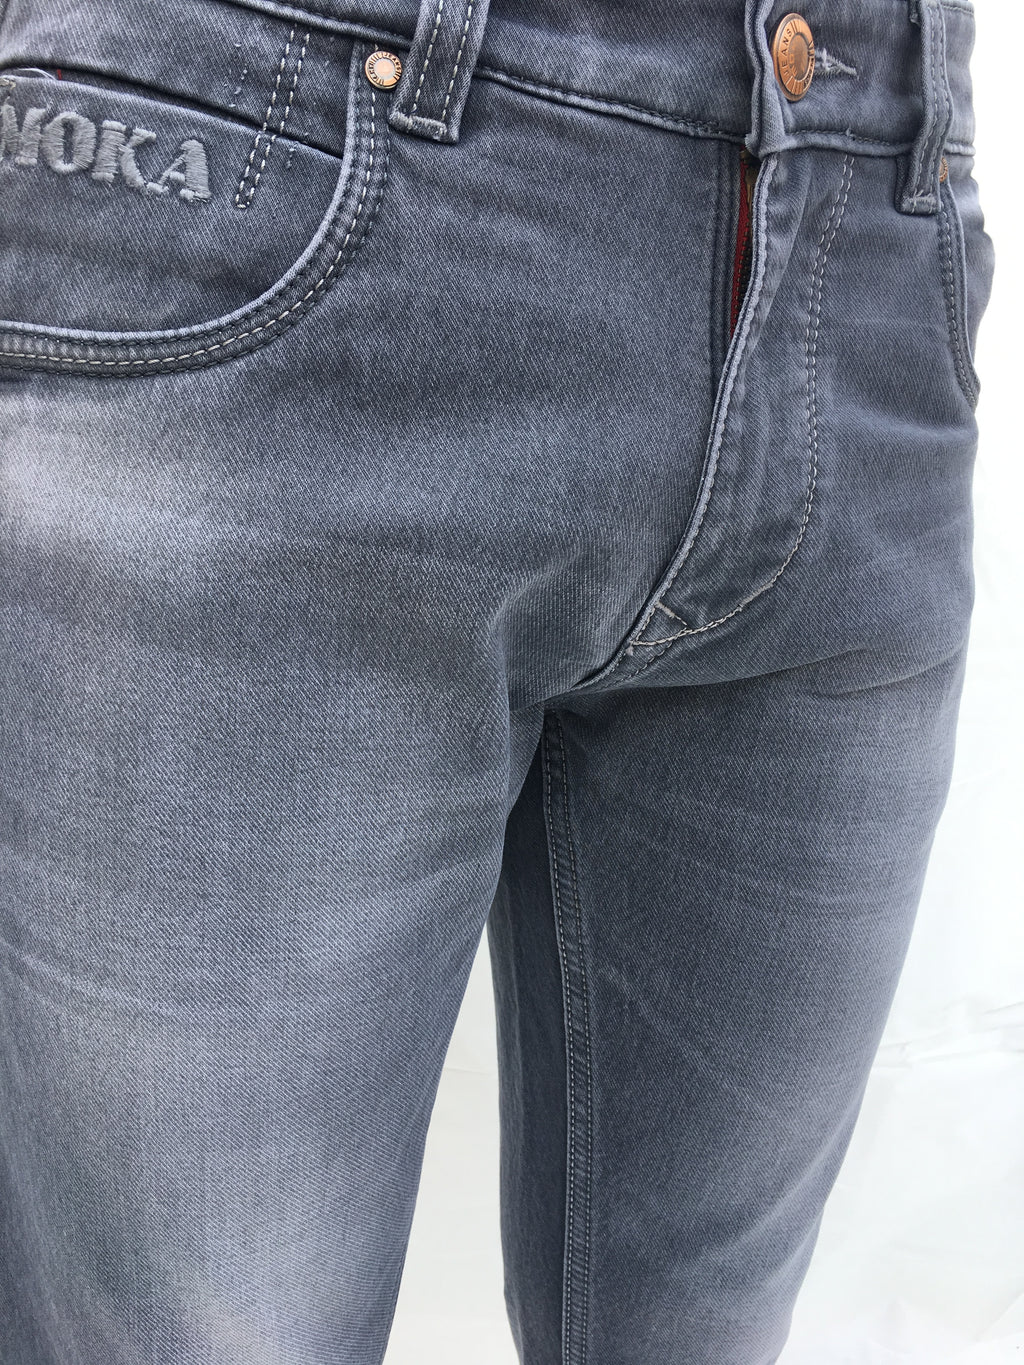 Grey- Tapered Jeans - THE UNIQUE FIT